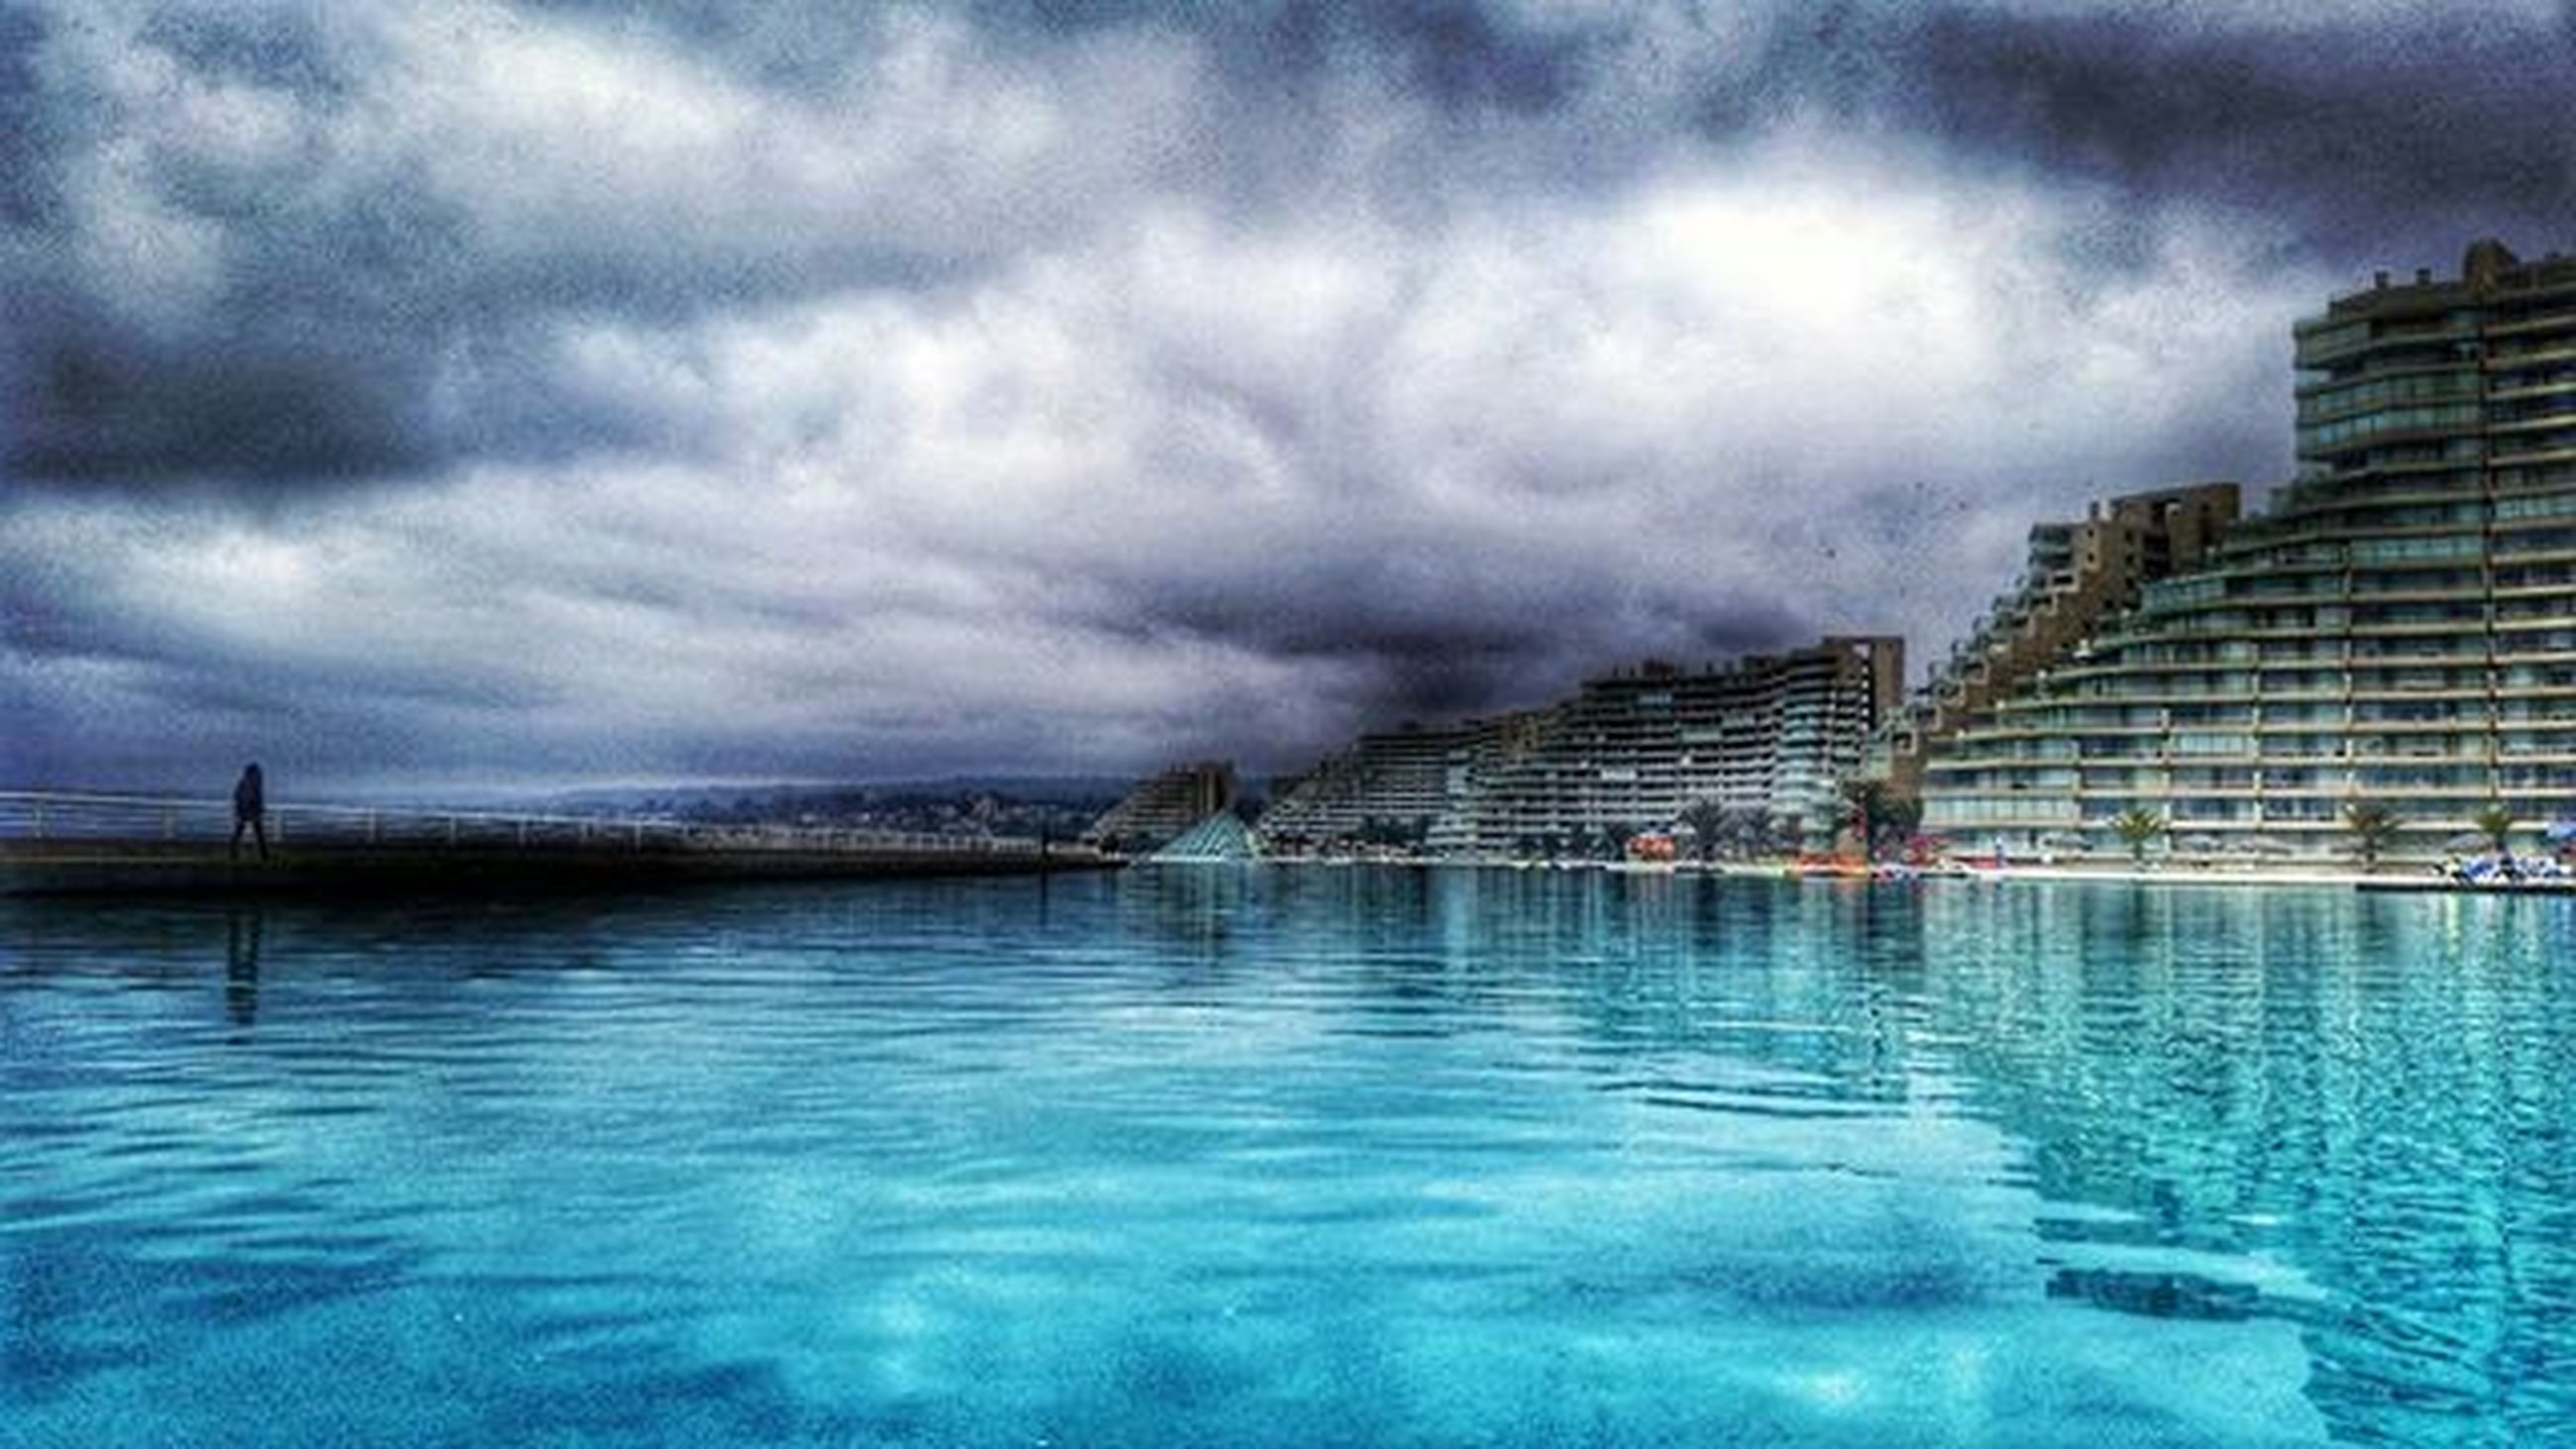 water, sky, architecture, waterfront, built structure, cloud - sky, building exterior, cloudy, weather, cloud, reflection, city, river, overcast, sea, rippled, storm cloud, dusk, nature, outdoors